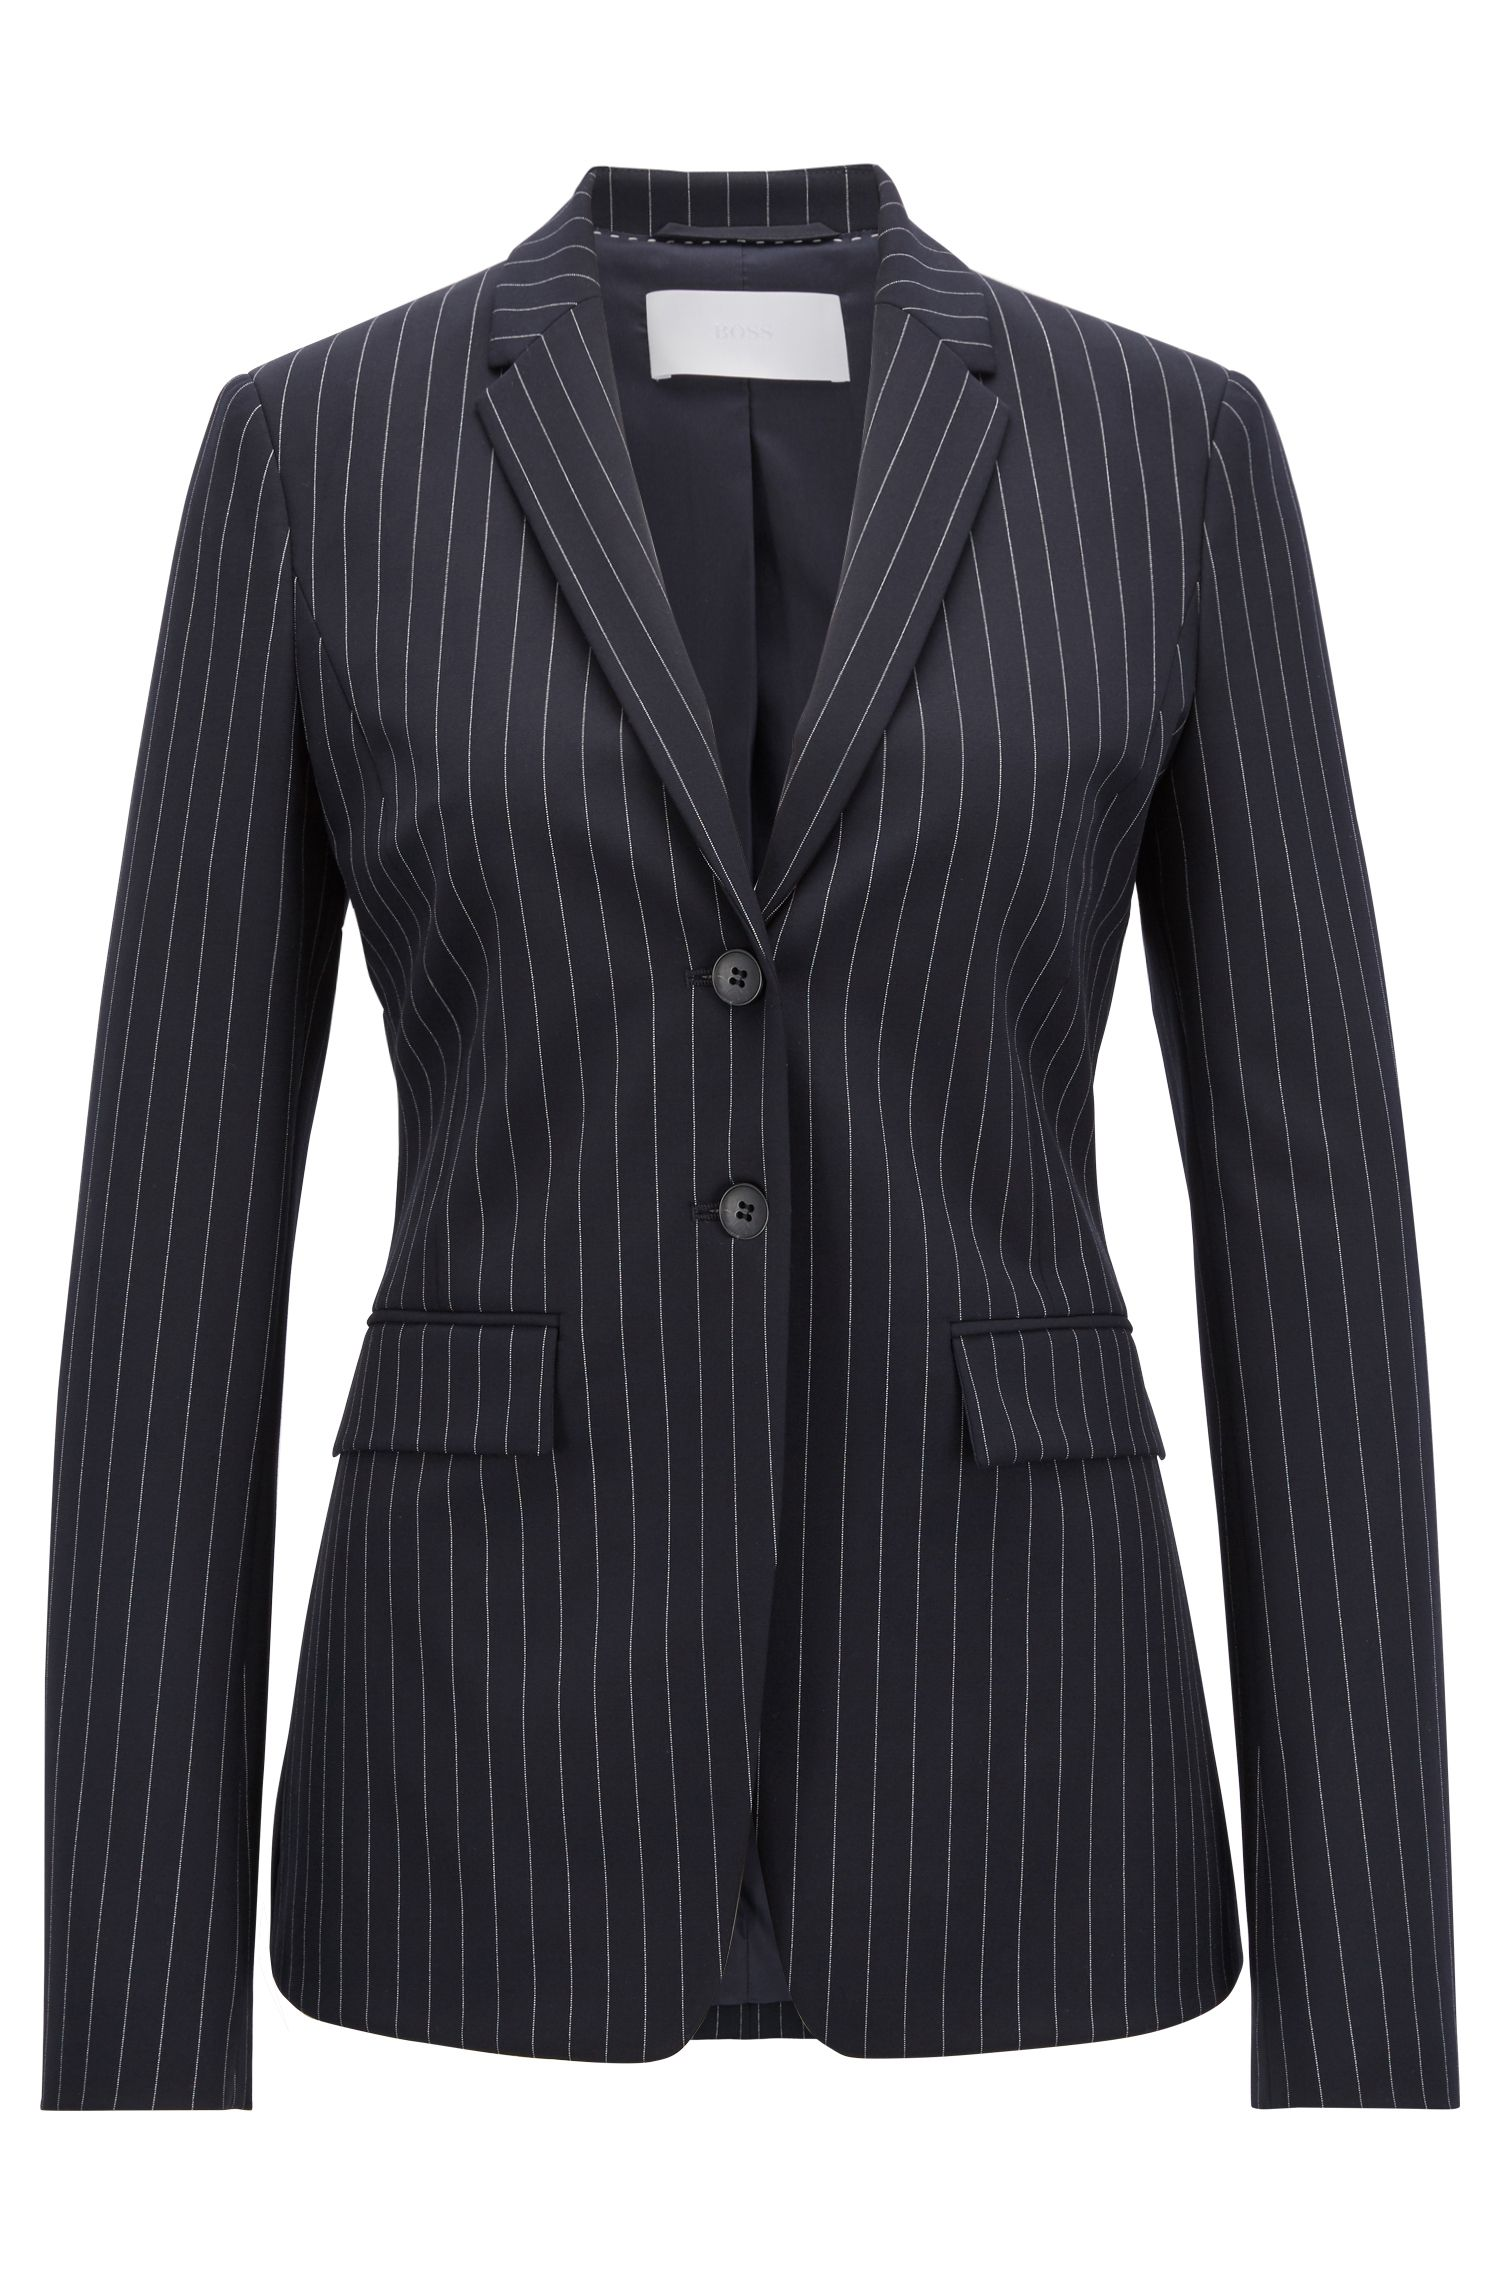 Regular-fit blazer in pinstripe stretch fabric, Patterned